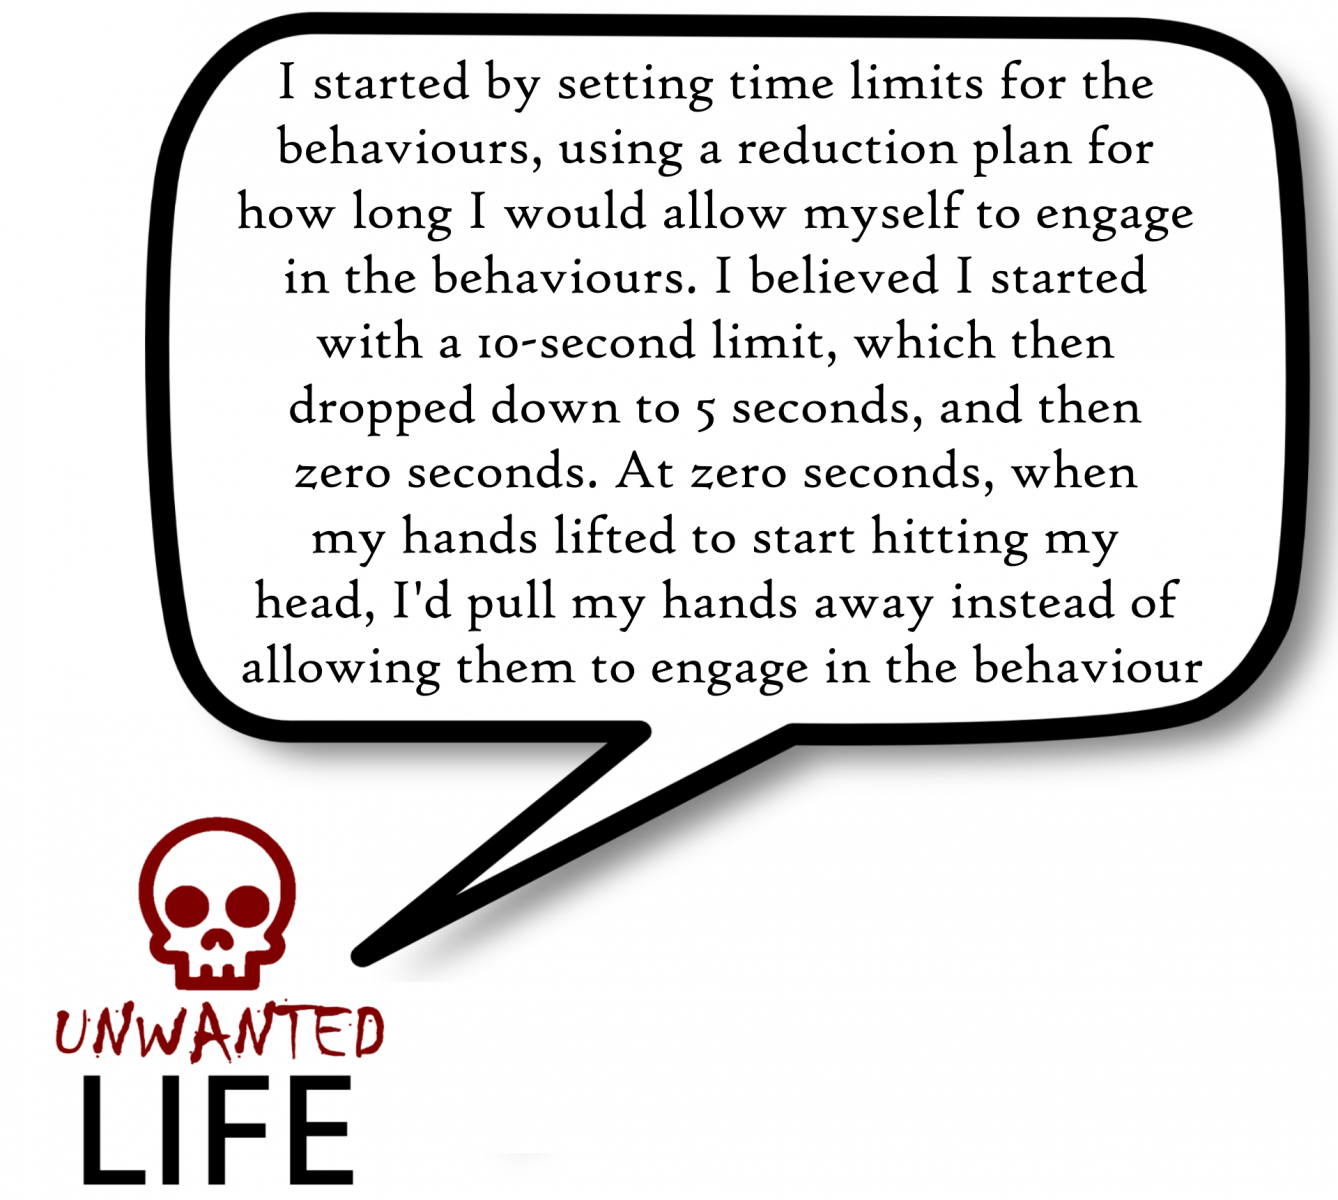 A quote from the blog Unwanted Life's article - Life With My Hair Destroying Behaviours 2